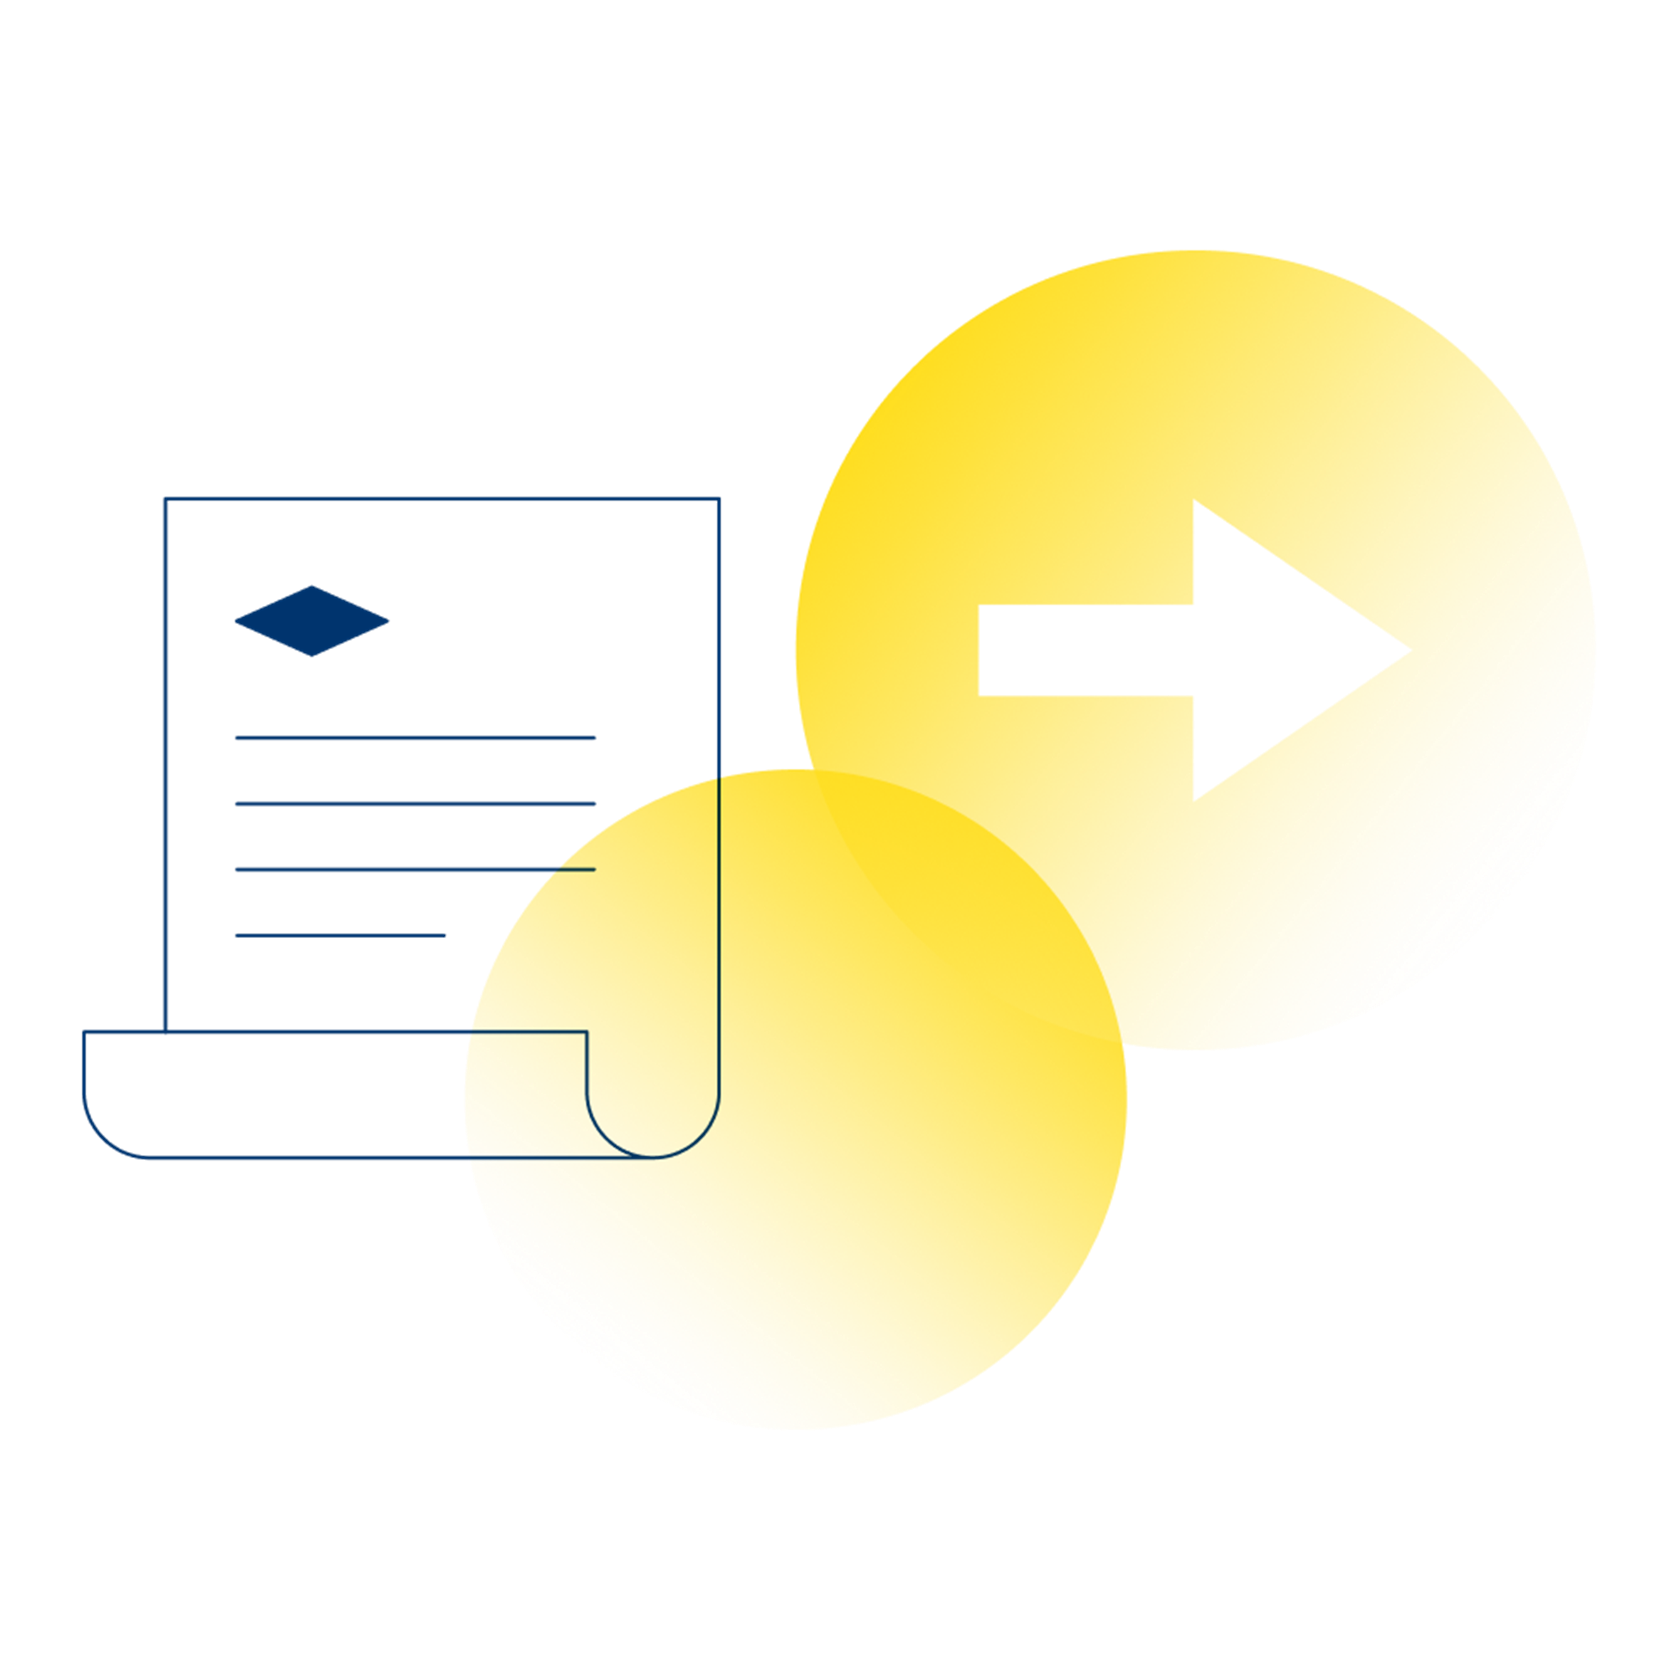 An illustration of a document or bill infront of two yellow circles.